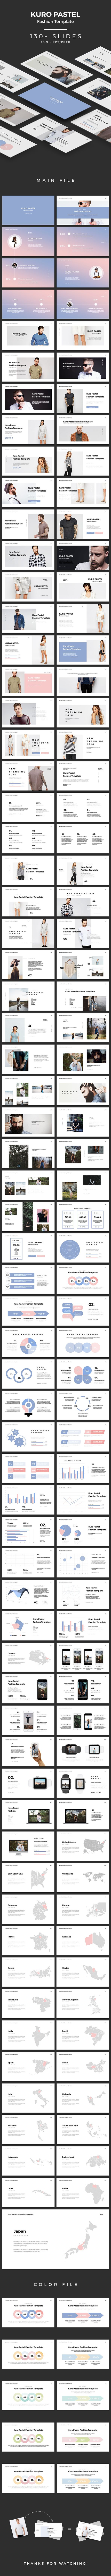 Kuro Pastel Powerpoint  Slide Template  • Only available here ➝ http://graphicriver.net/item/kuro-pastel-slide-template/16349291?ref=pxcr